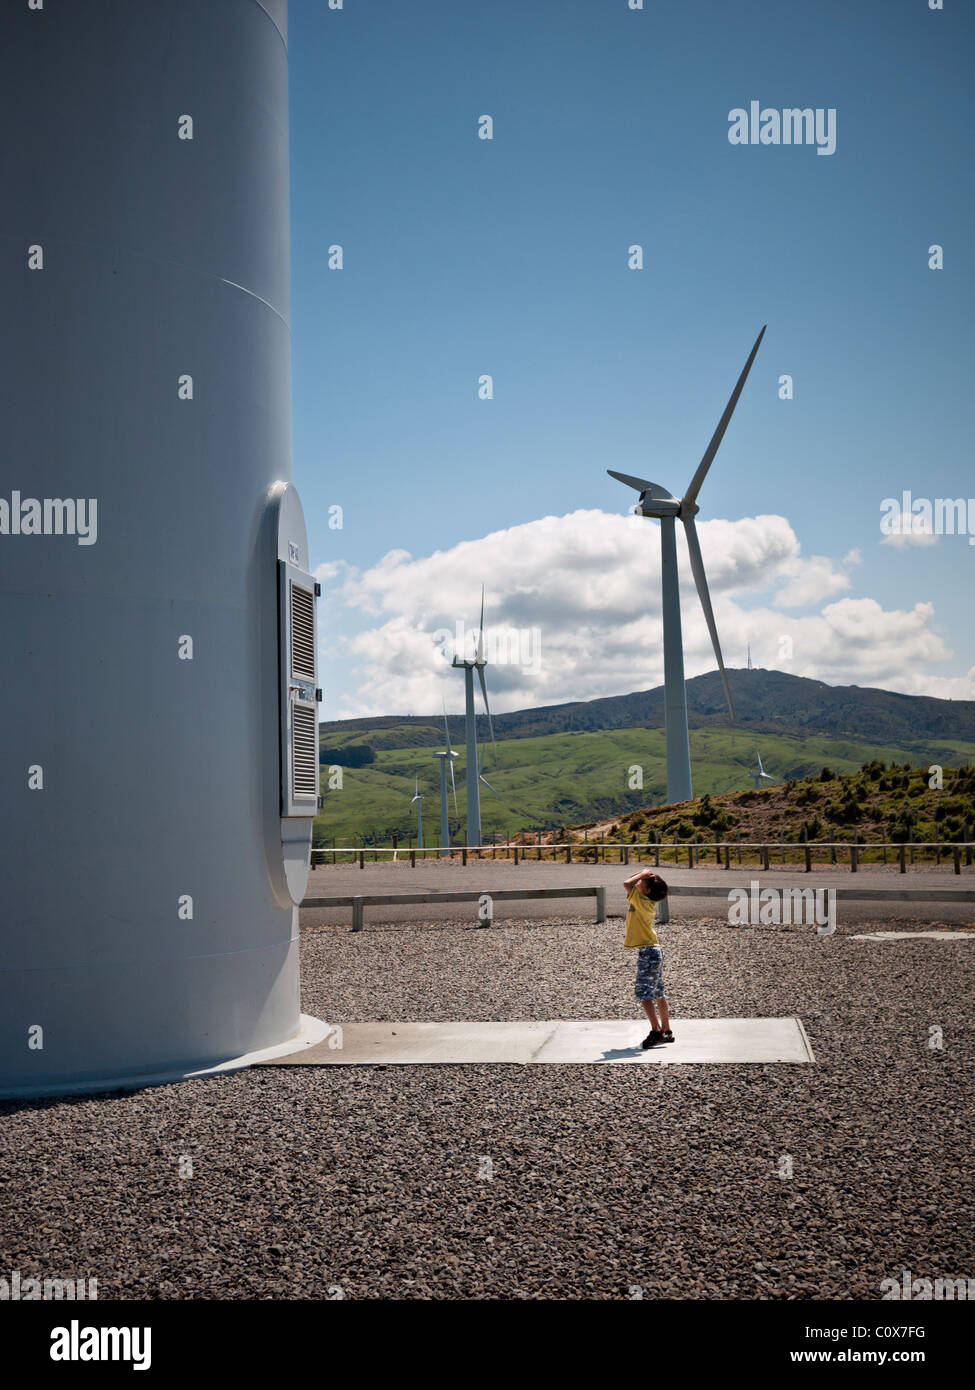 Boy looks up at wind turbine, Te Apiti wind farm, New Zealand. - Stock Image